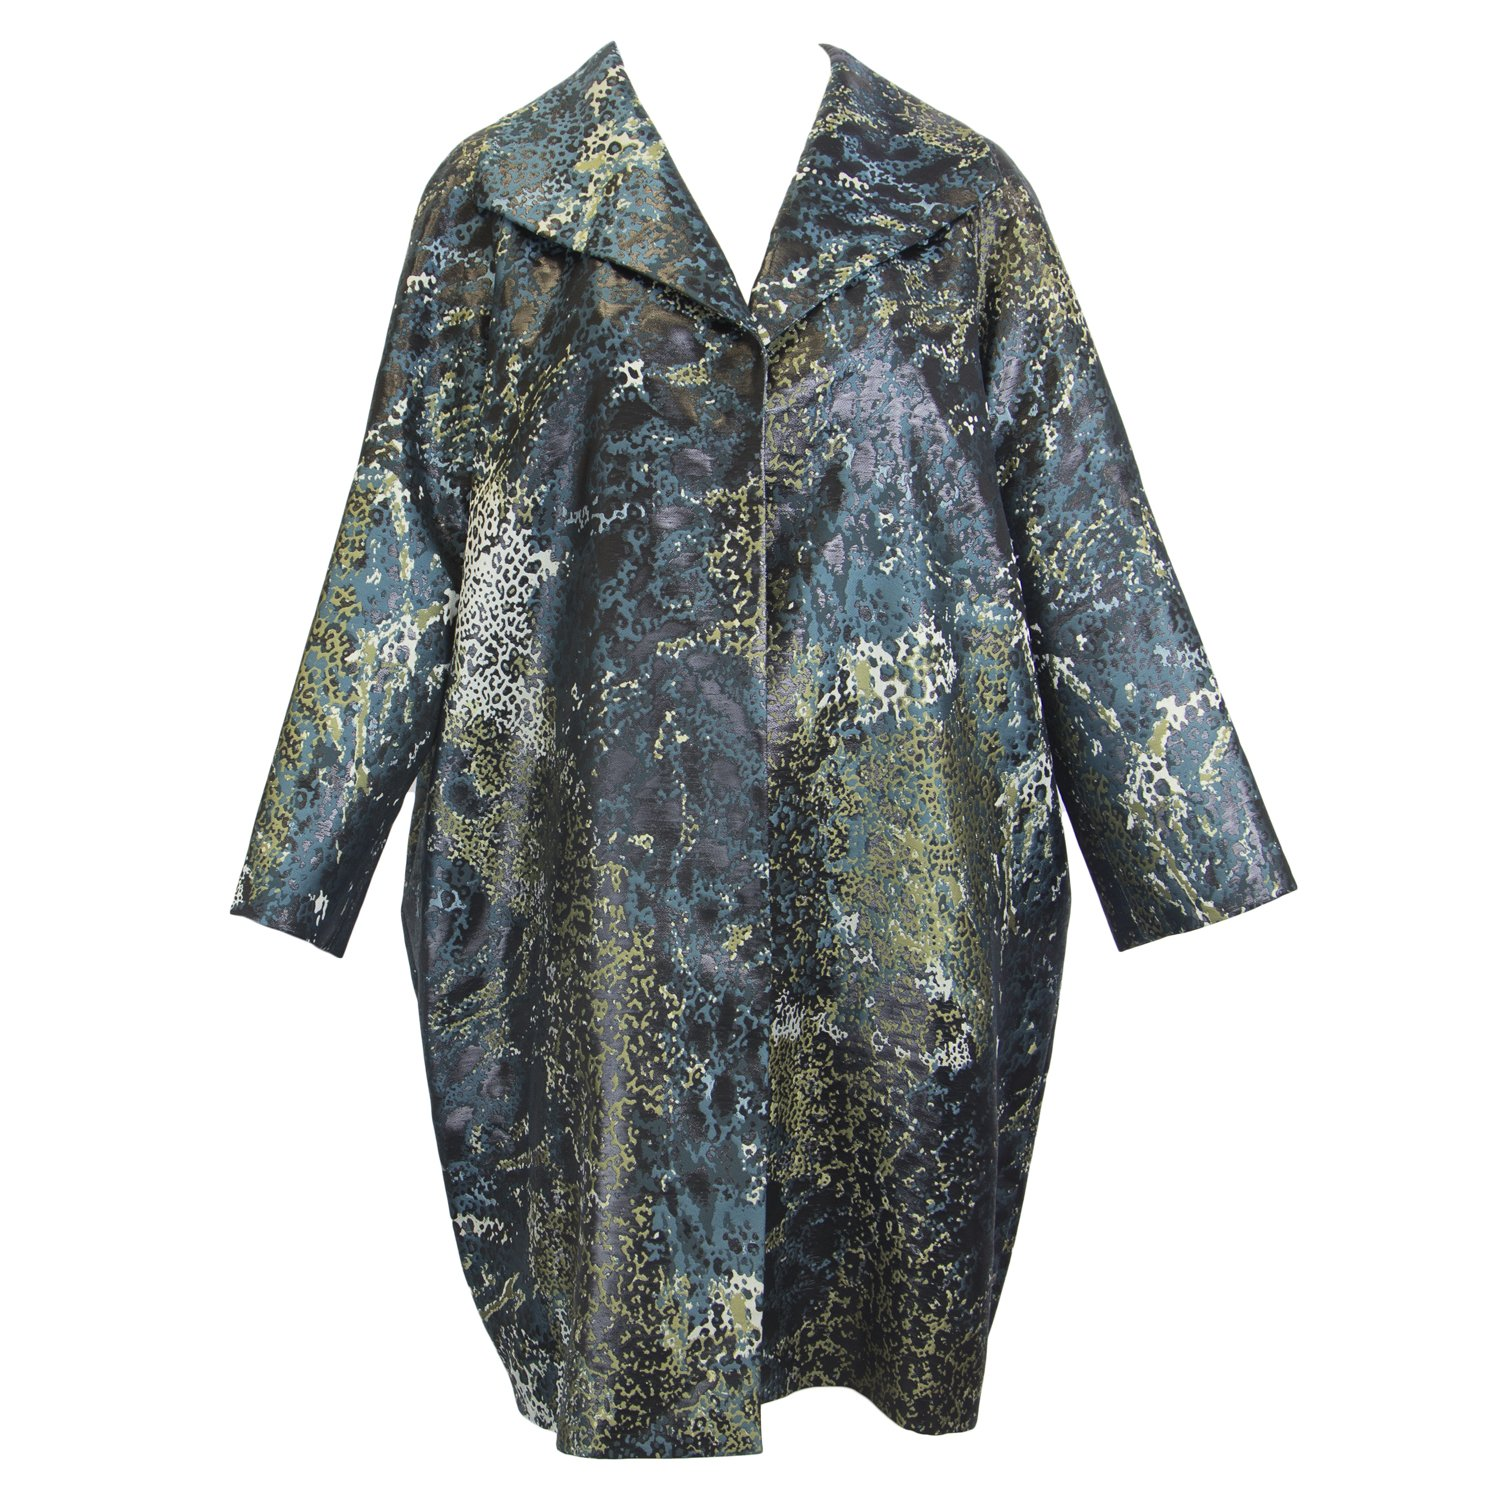 Marina Rinaldi Women's Tigrotto Metallic Printed Coat, Multicolor, 18W / 27